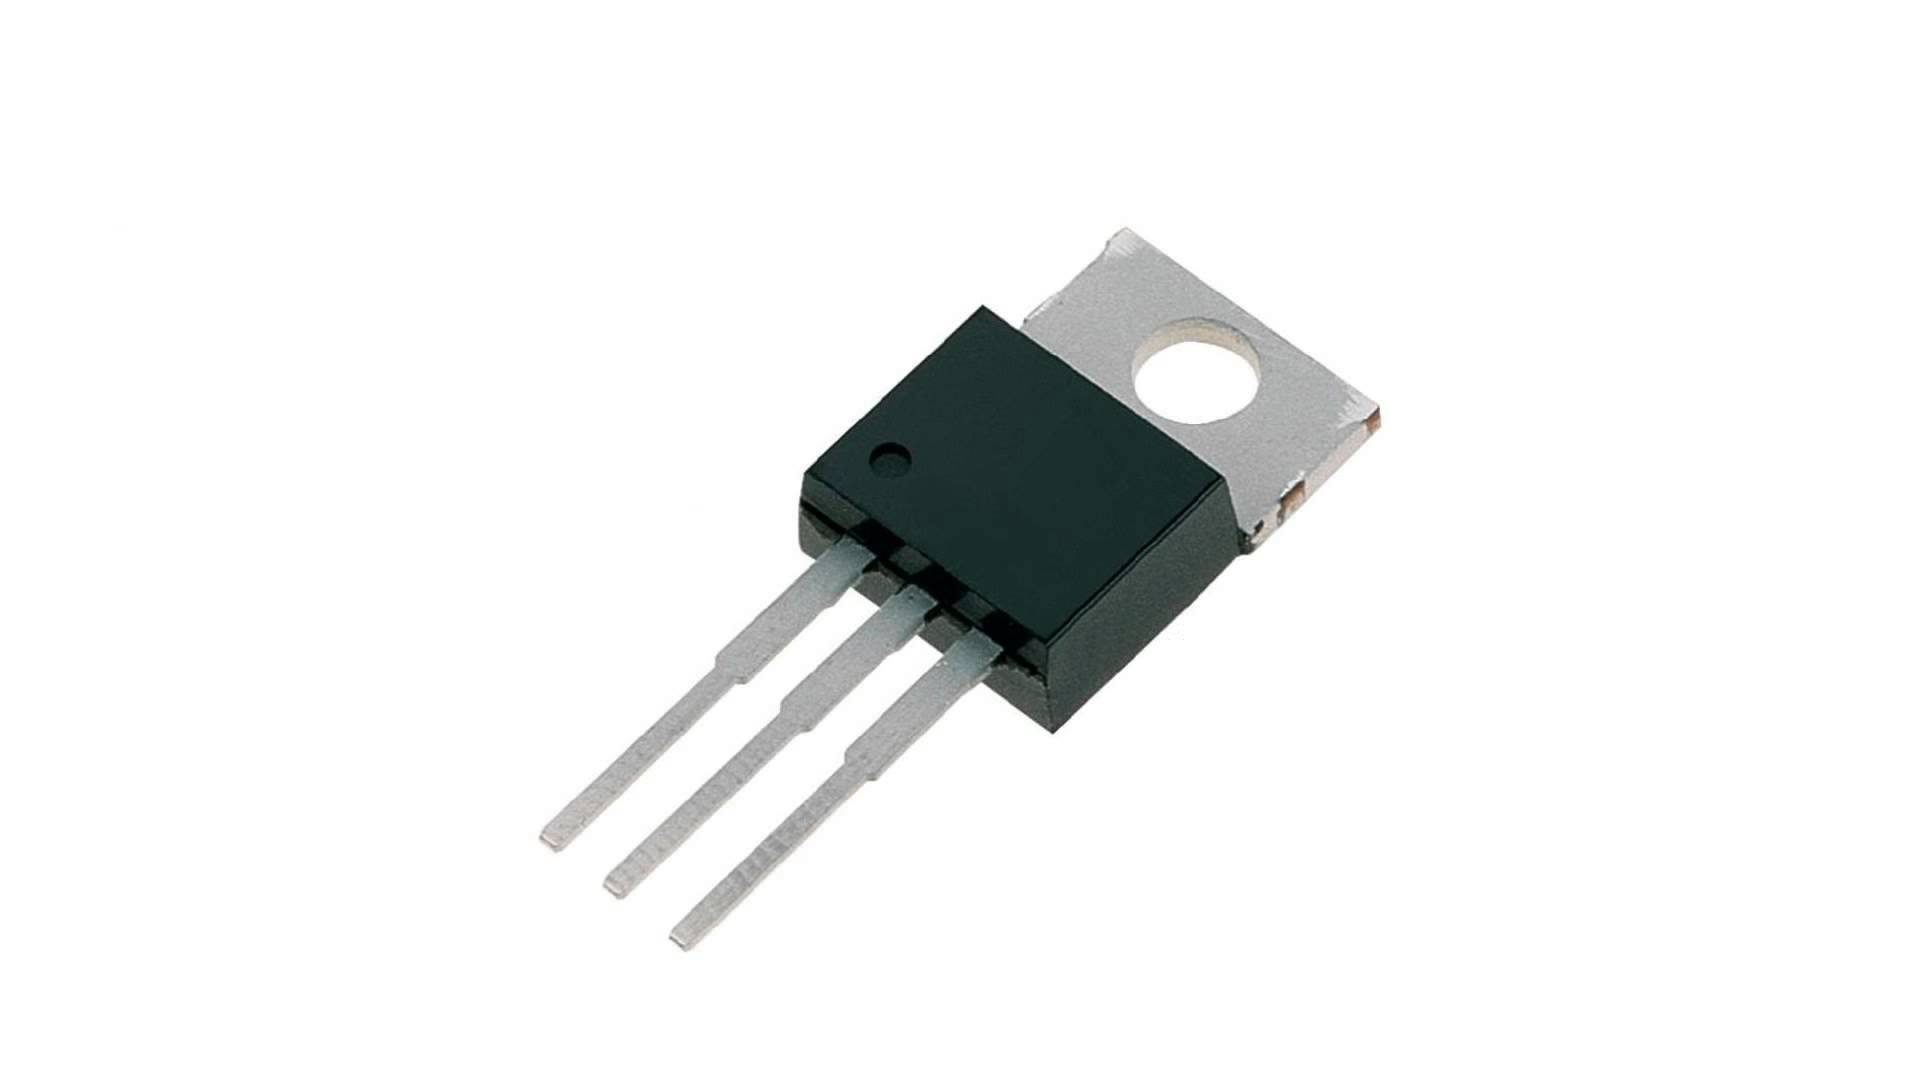 BT137/800 TO-220 BT137/800E TRIAC 800V 8A 70MA TO-220